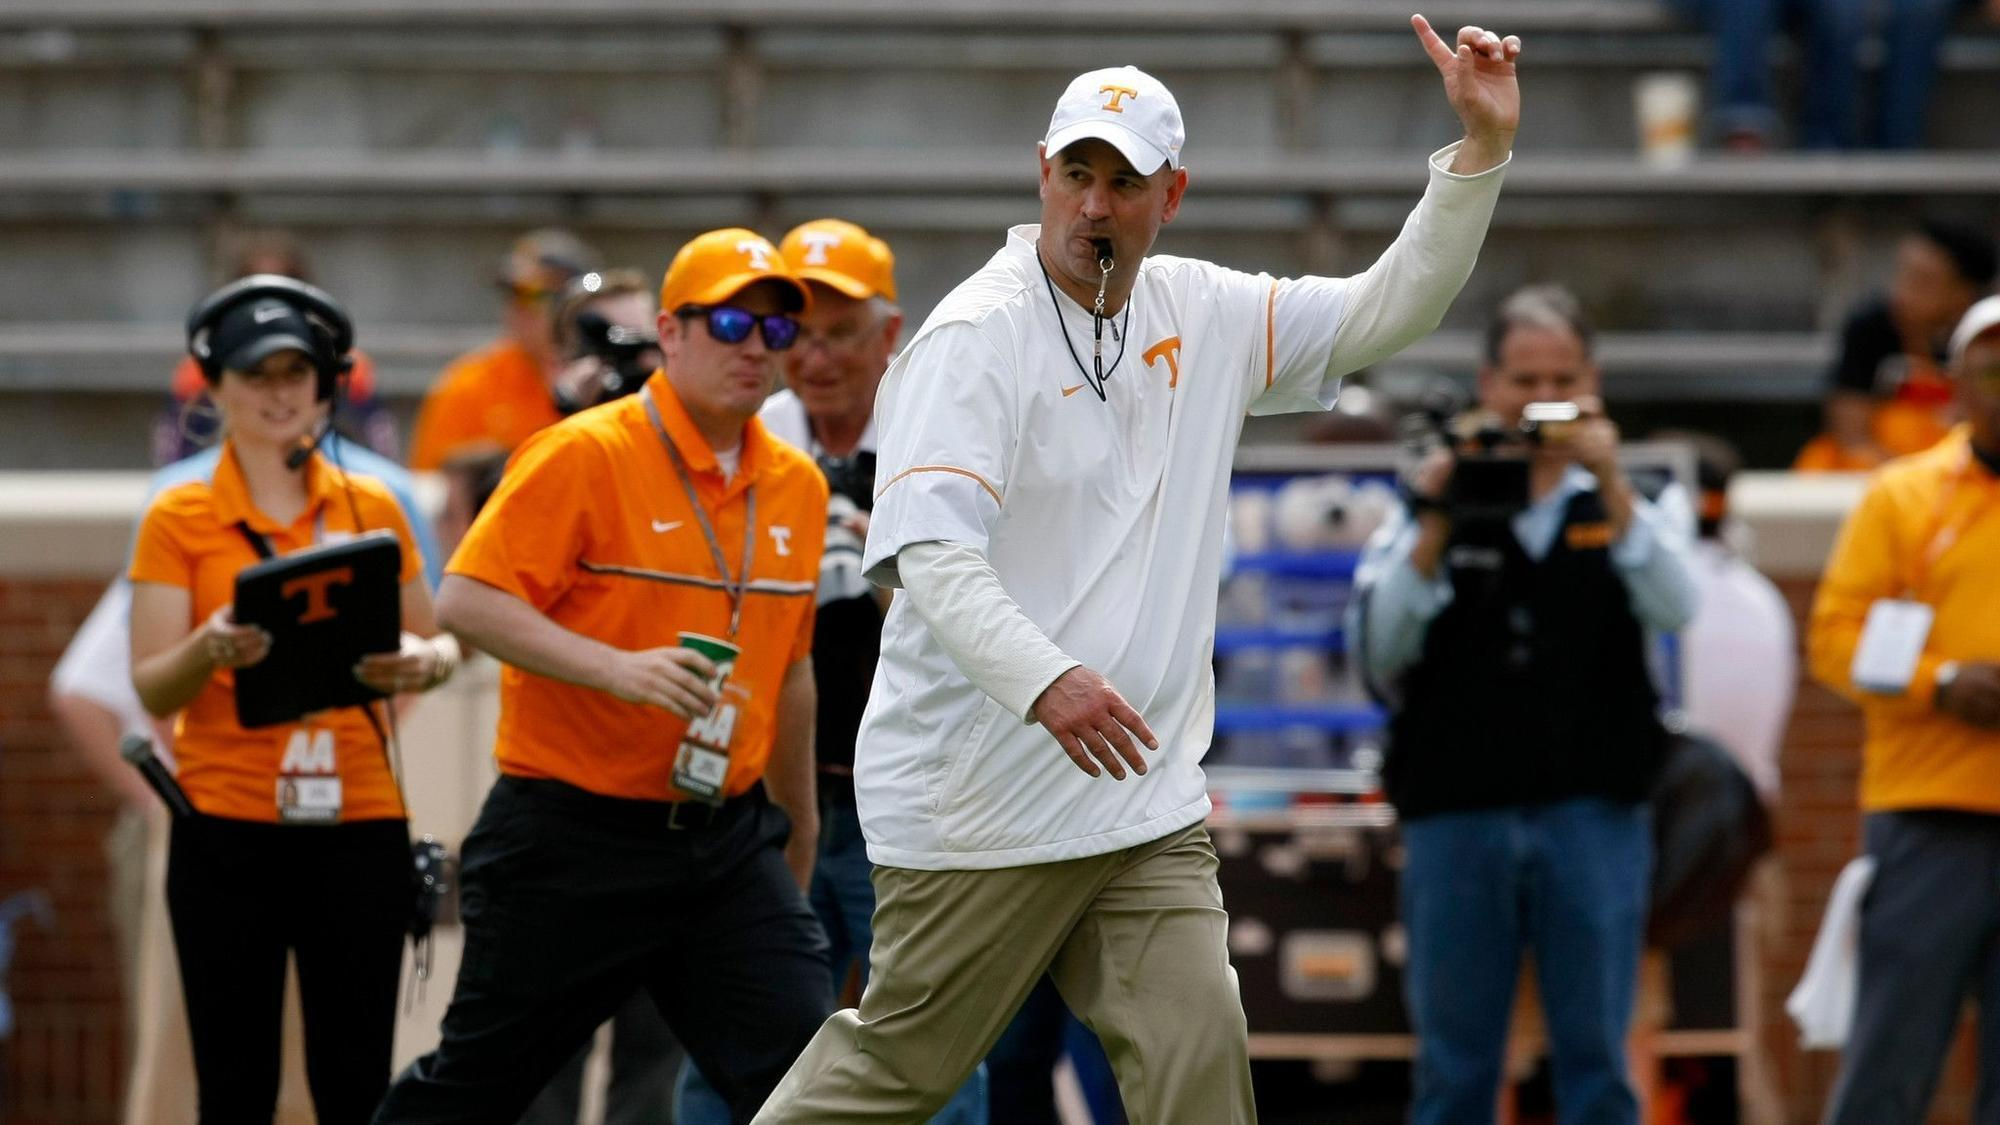 Os-sp-college-football-rankings-tennessee-0531